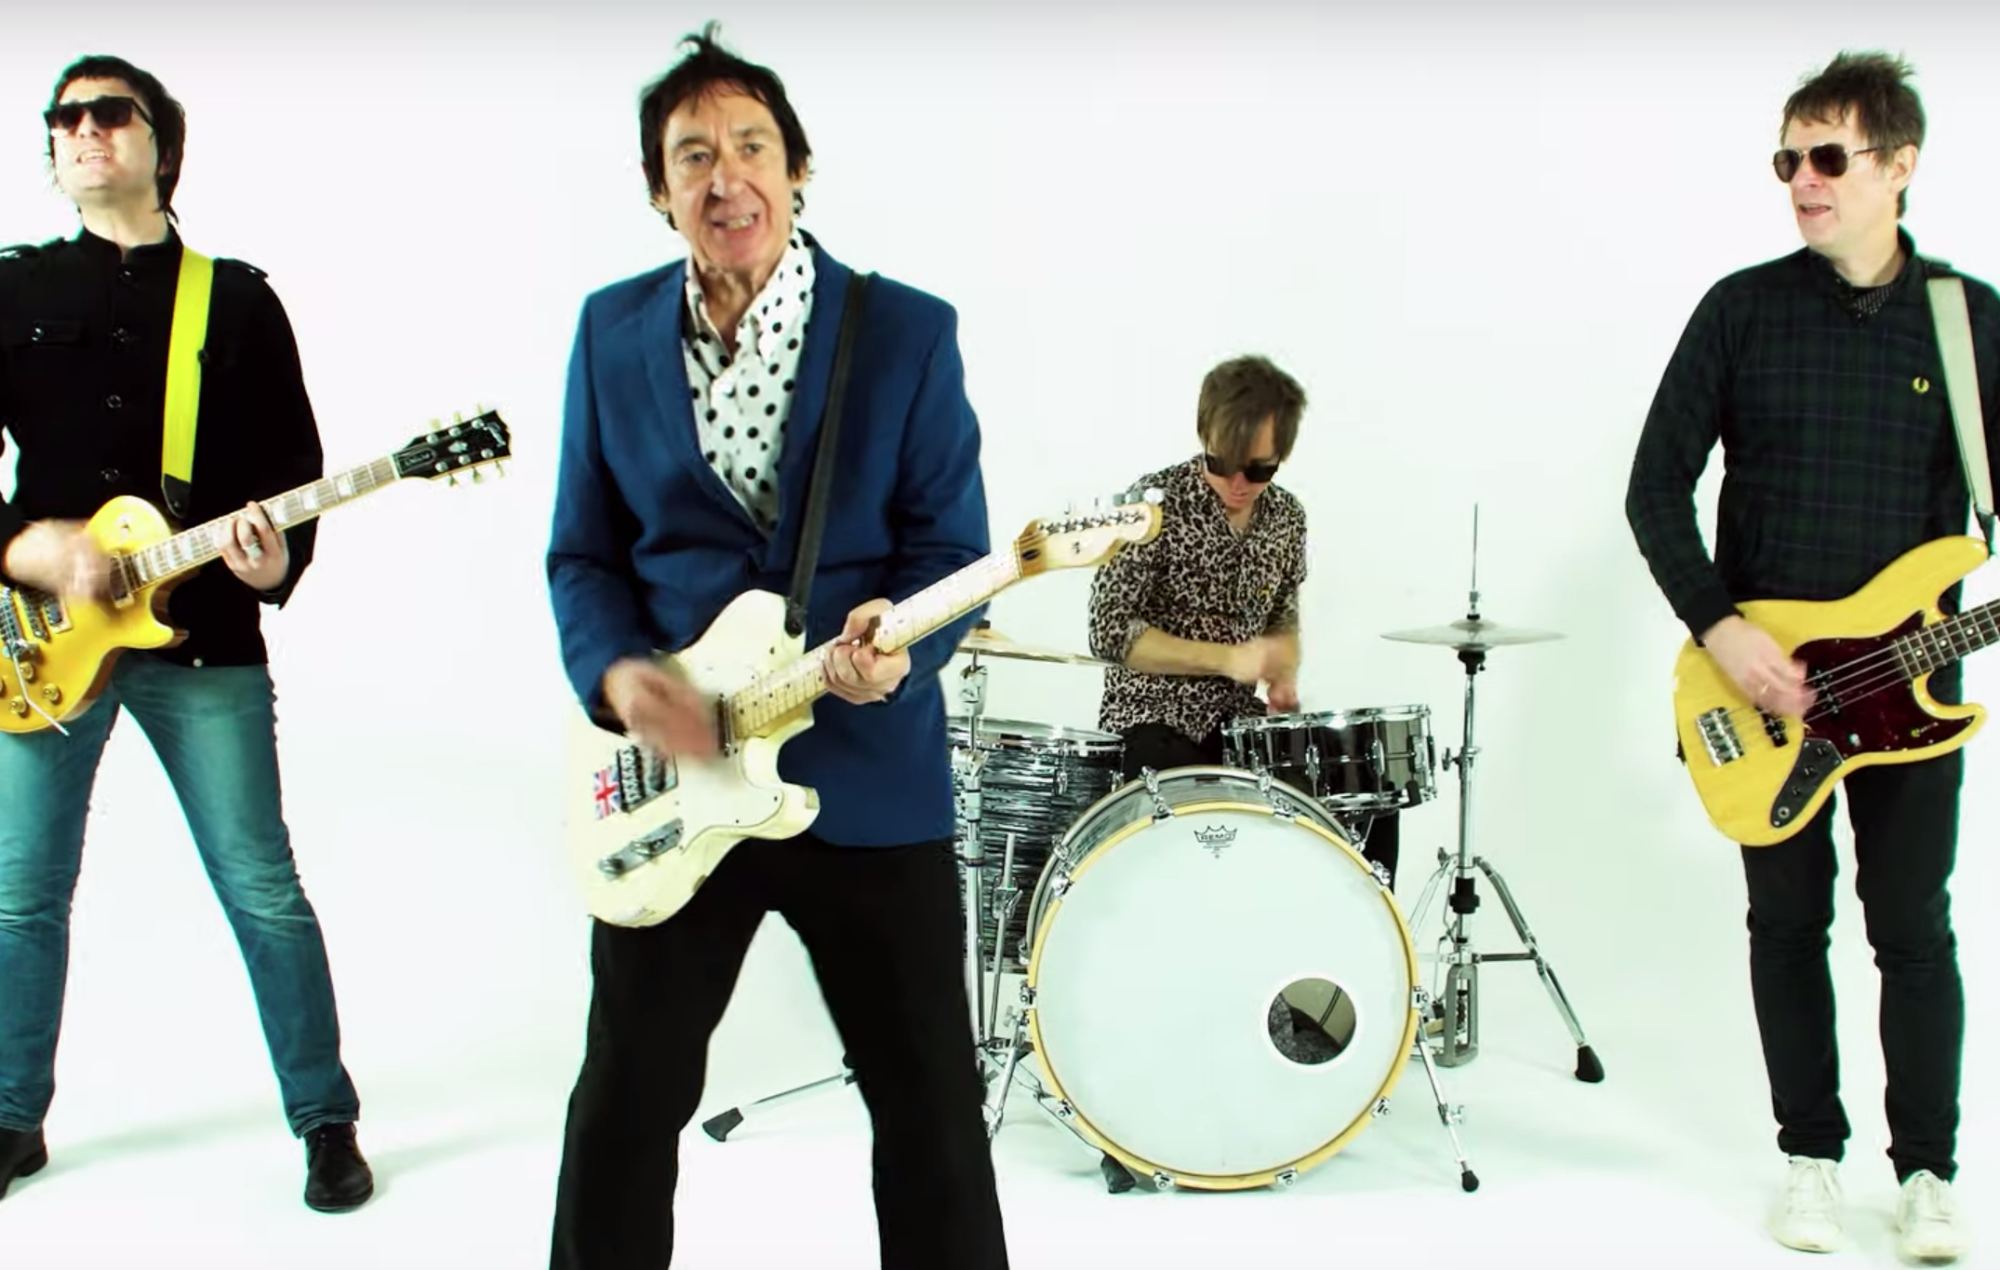 Buzzcocks have unveiled their first two new singles since since the death of frontman Pete Shelley